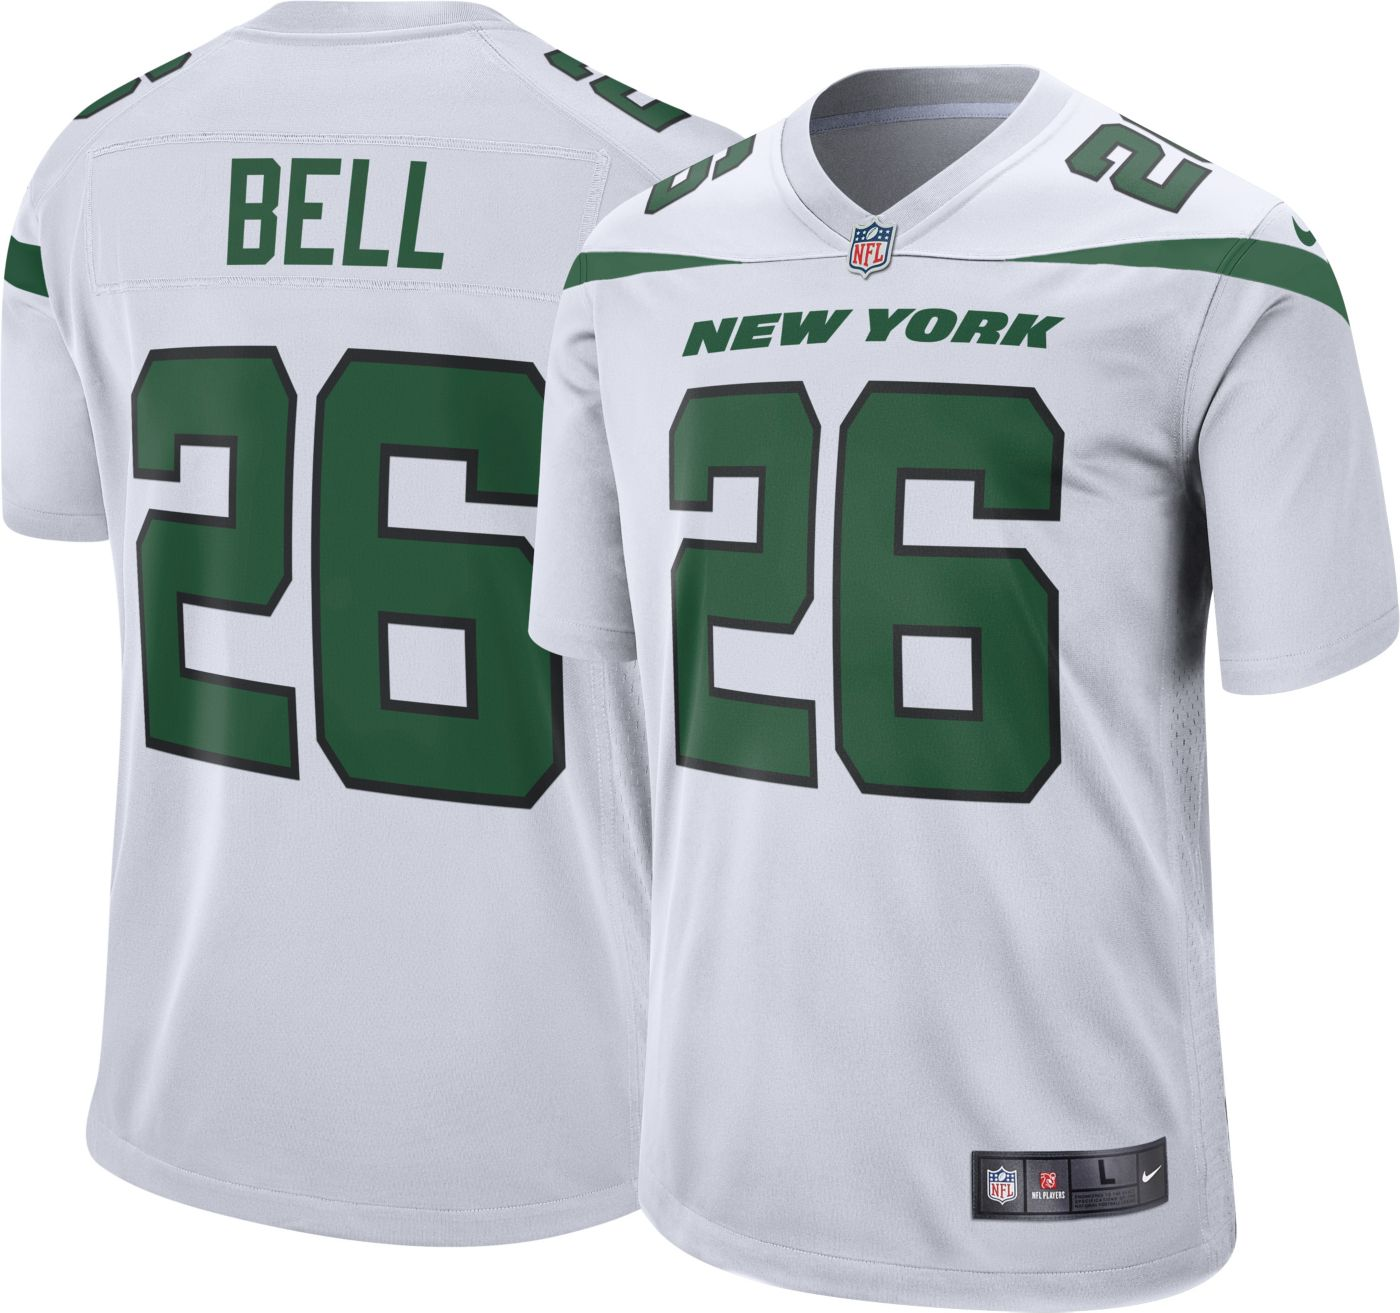 Nike Men's Away Game Jersey New York Jets Le'Veon Bell #26